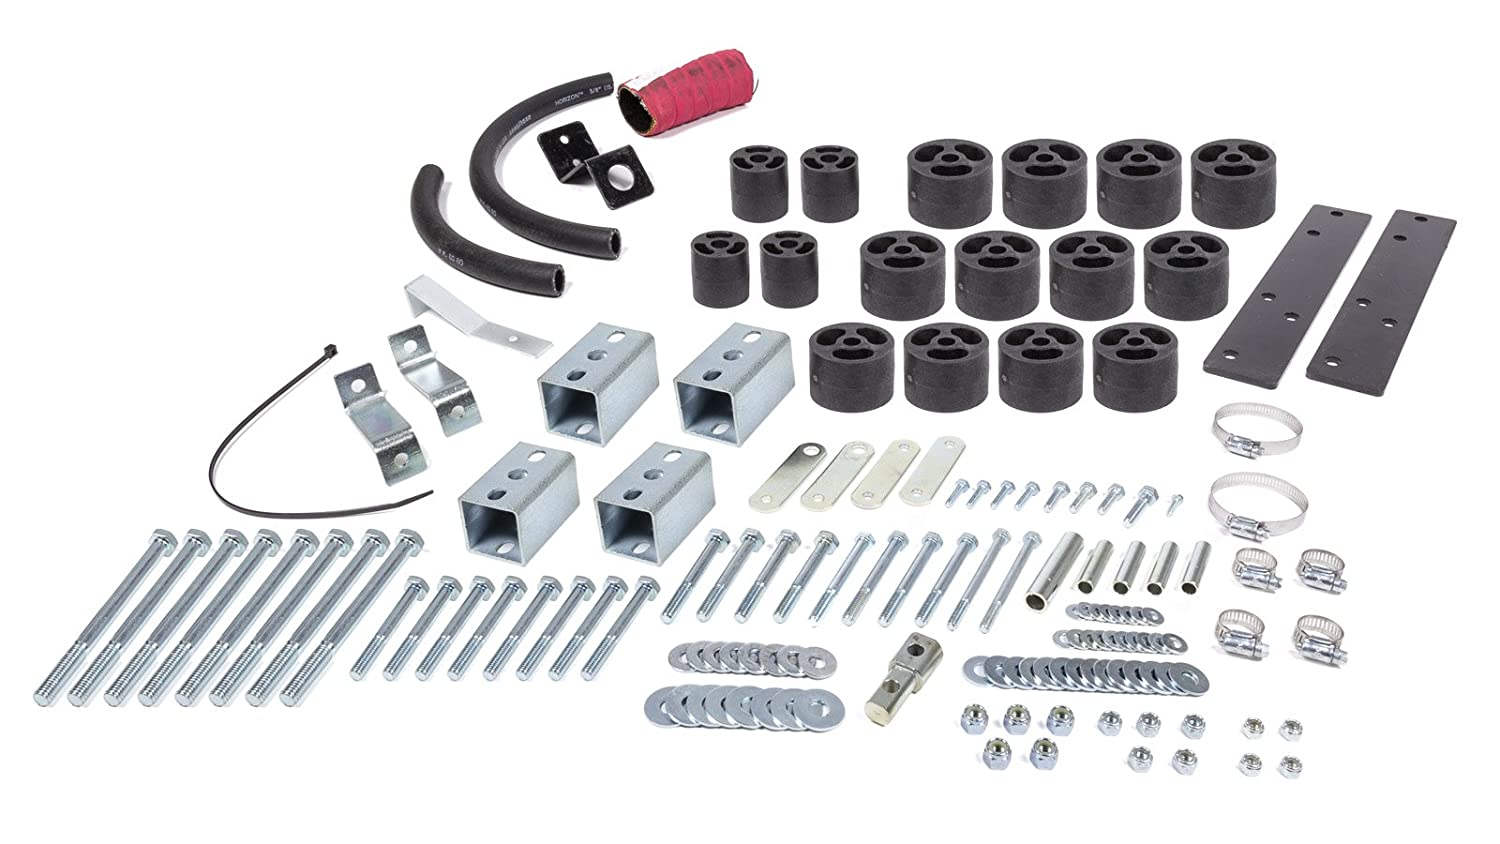 Performance Accessories, Chevy/GMC S-10/S15/Sonoma/ZR-2 2WD and 4WD Std/Ext Cab 2' Body Lift Kit, fits 1994 to 1997, PA102, Made in America Chevy/GMC S-10/S15/Sonoma/ZR-2 2WD and 4WD Std/Ext Cab 2 Body Lift Kit